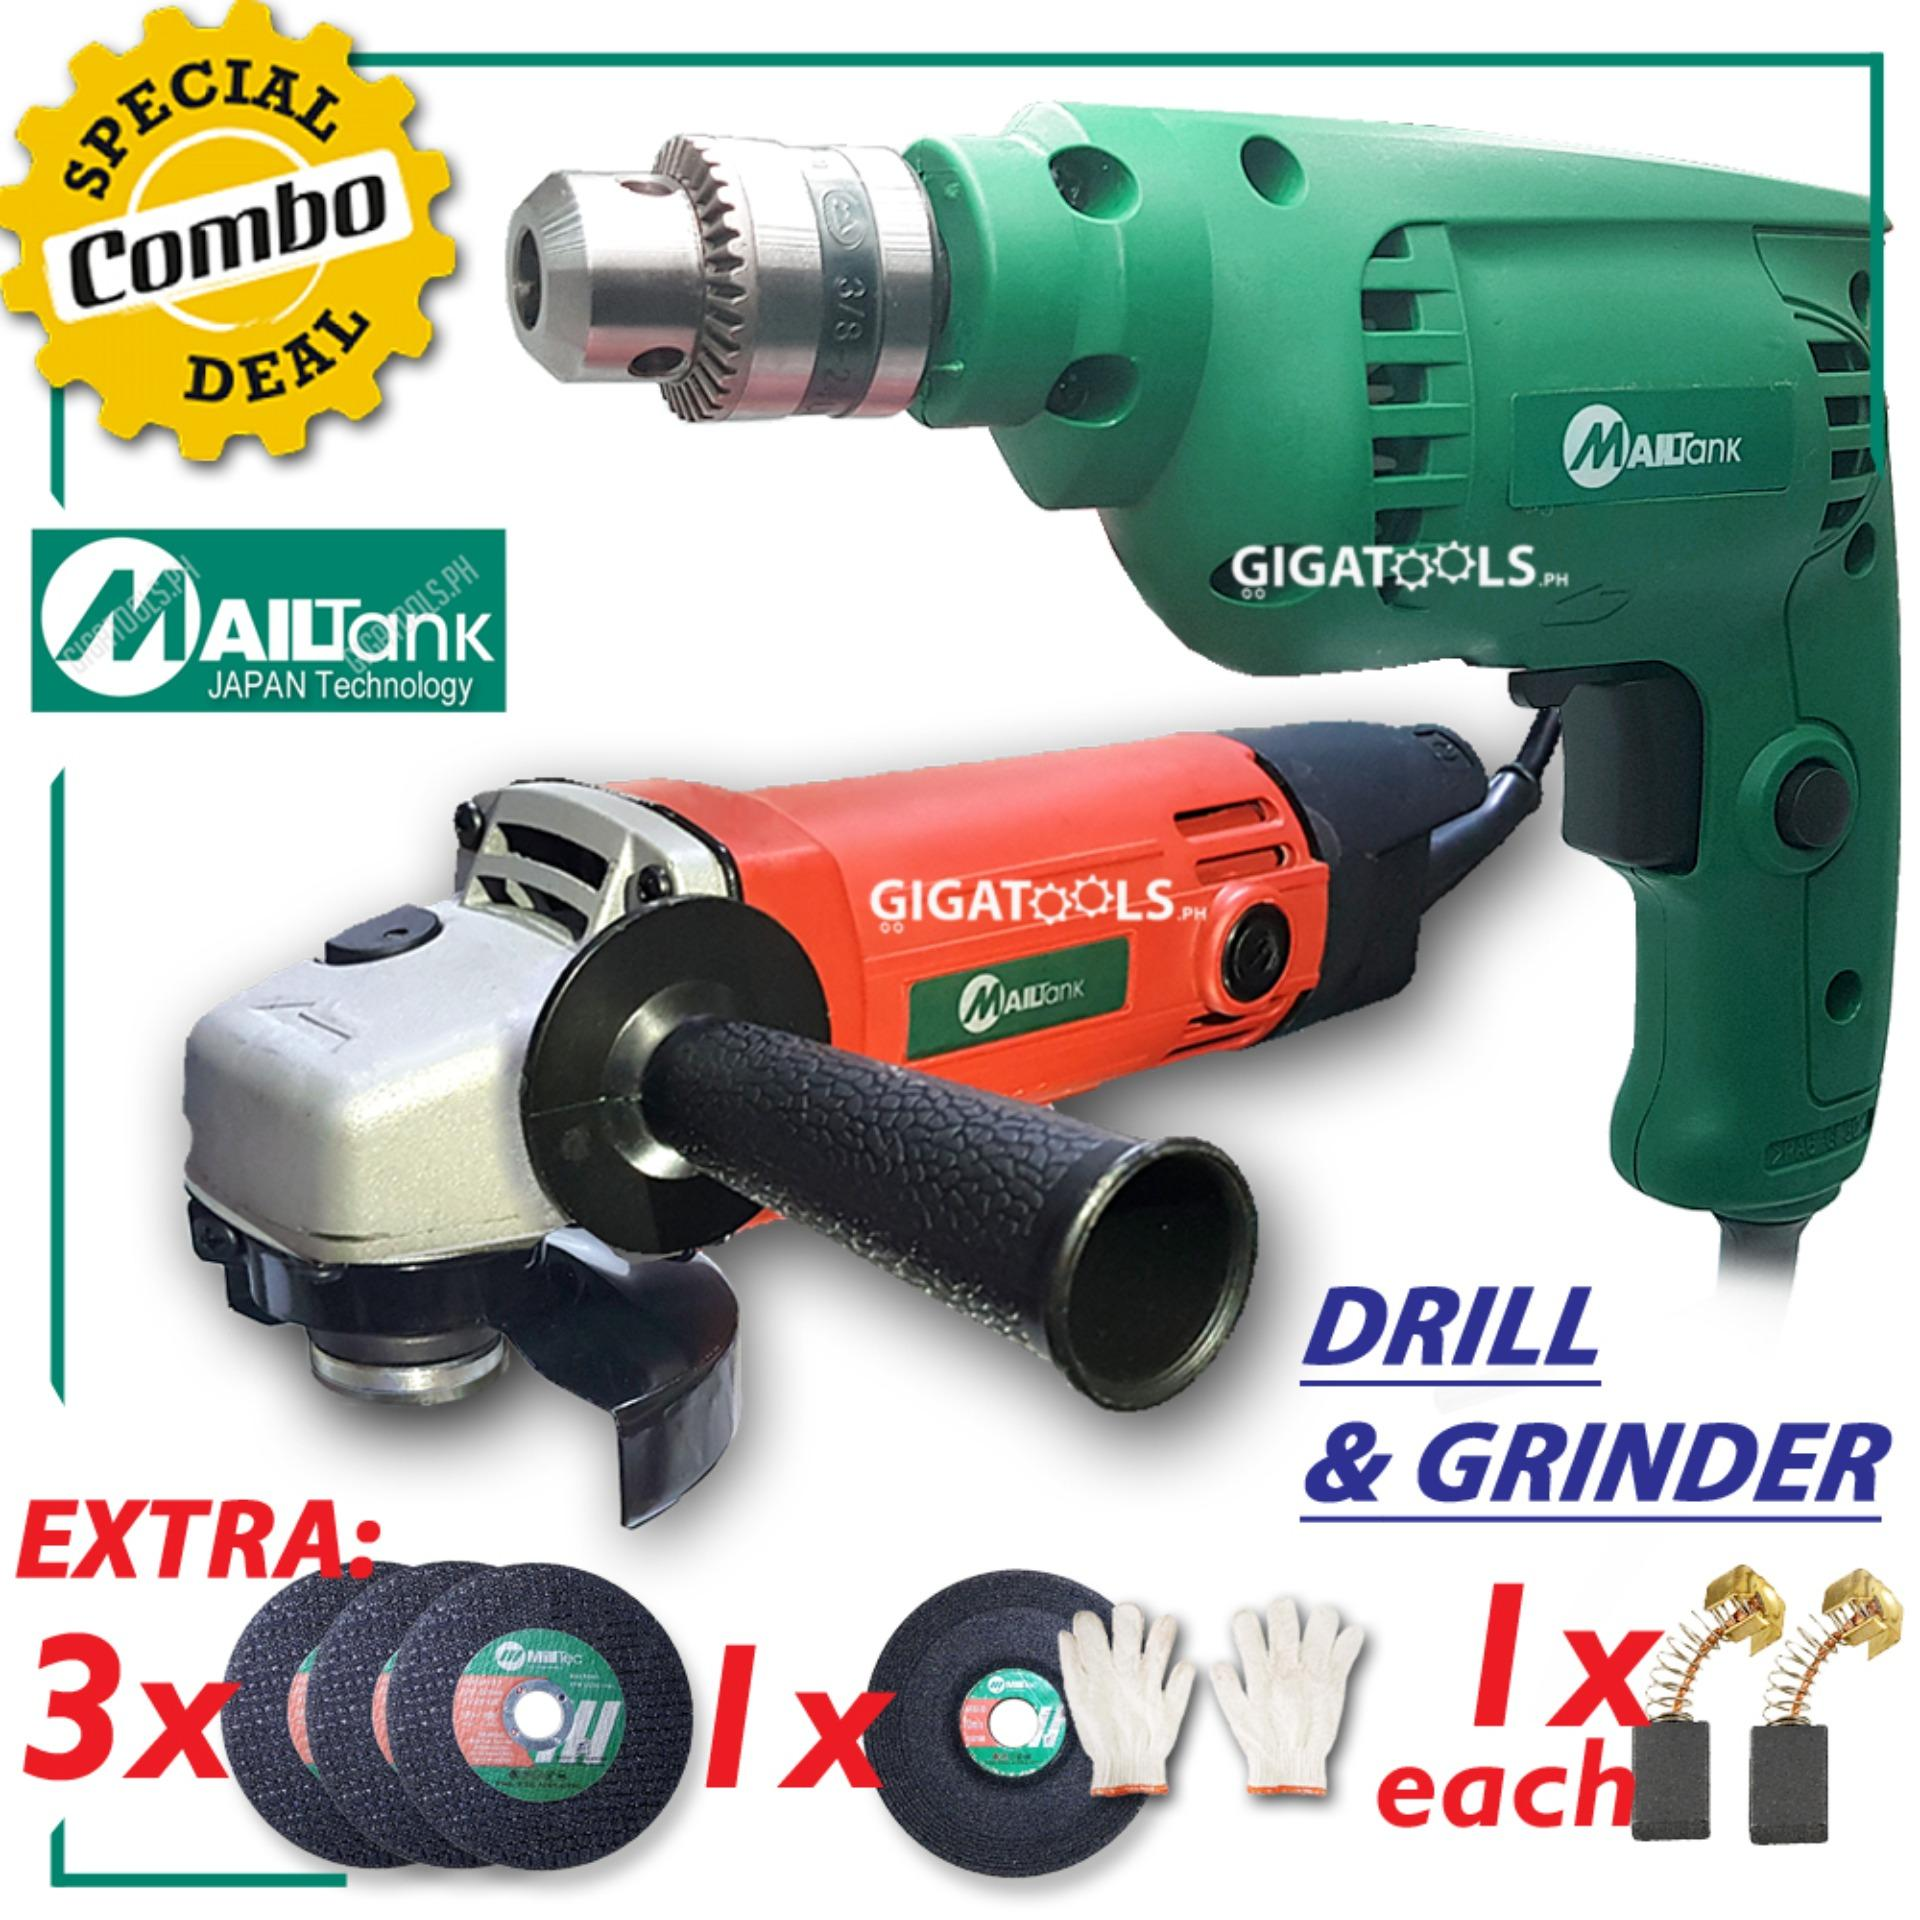 MailTank Grinder and Drill Combo Package (3pcs Cutting Disc, 1pc Grinding Disc, and